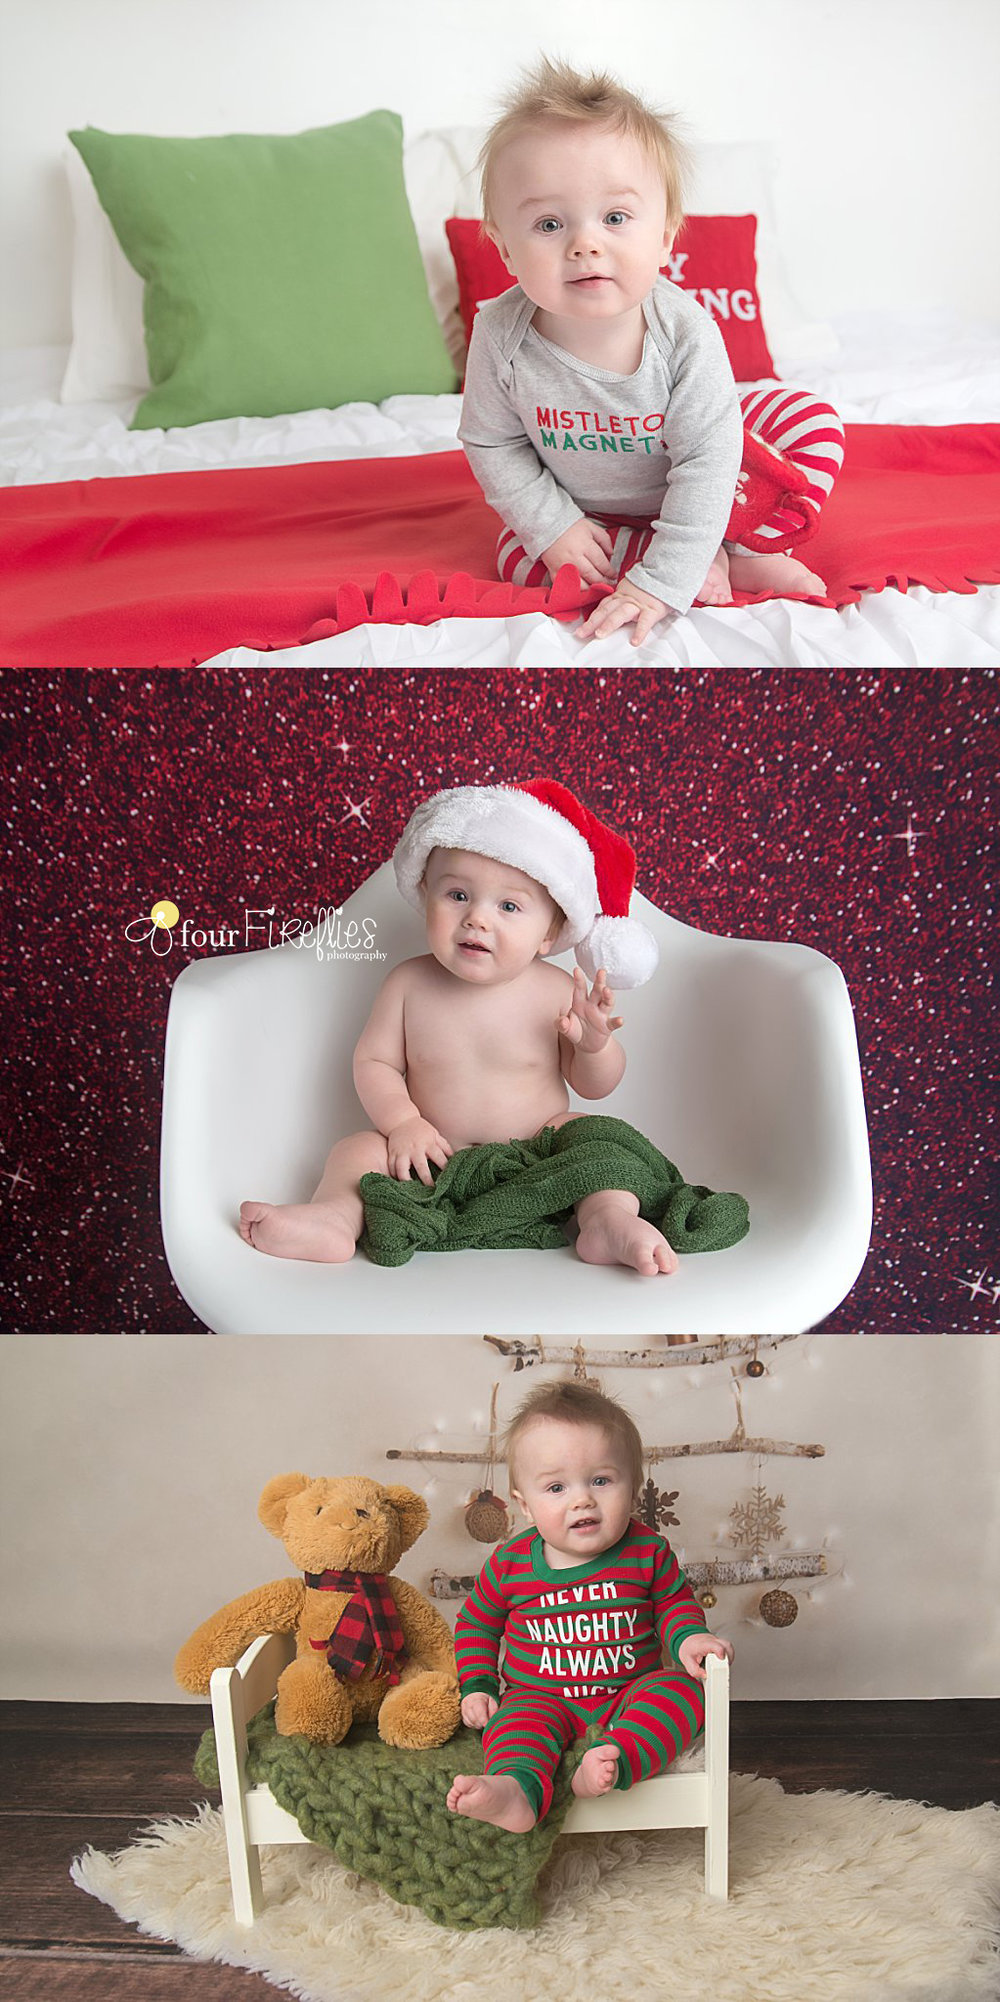 st-louis-baby-photographer-christmas-baby-on-three-different-backdrops-red-and-green-bed-red-sparkle-backdrop-rustic-tree-and-teddy-bear.jpg